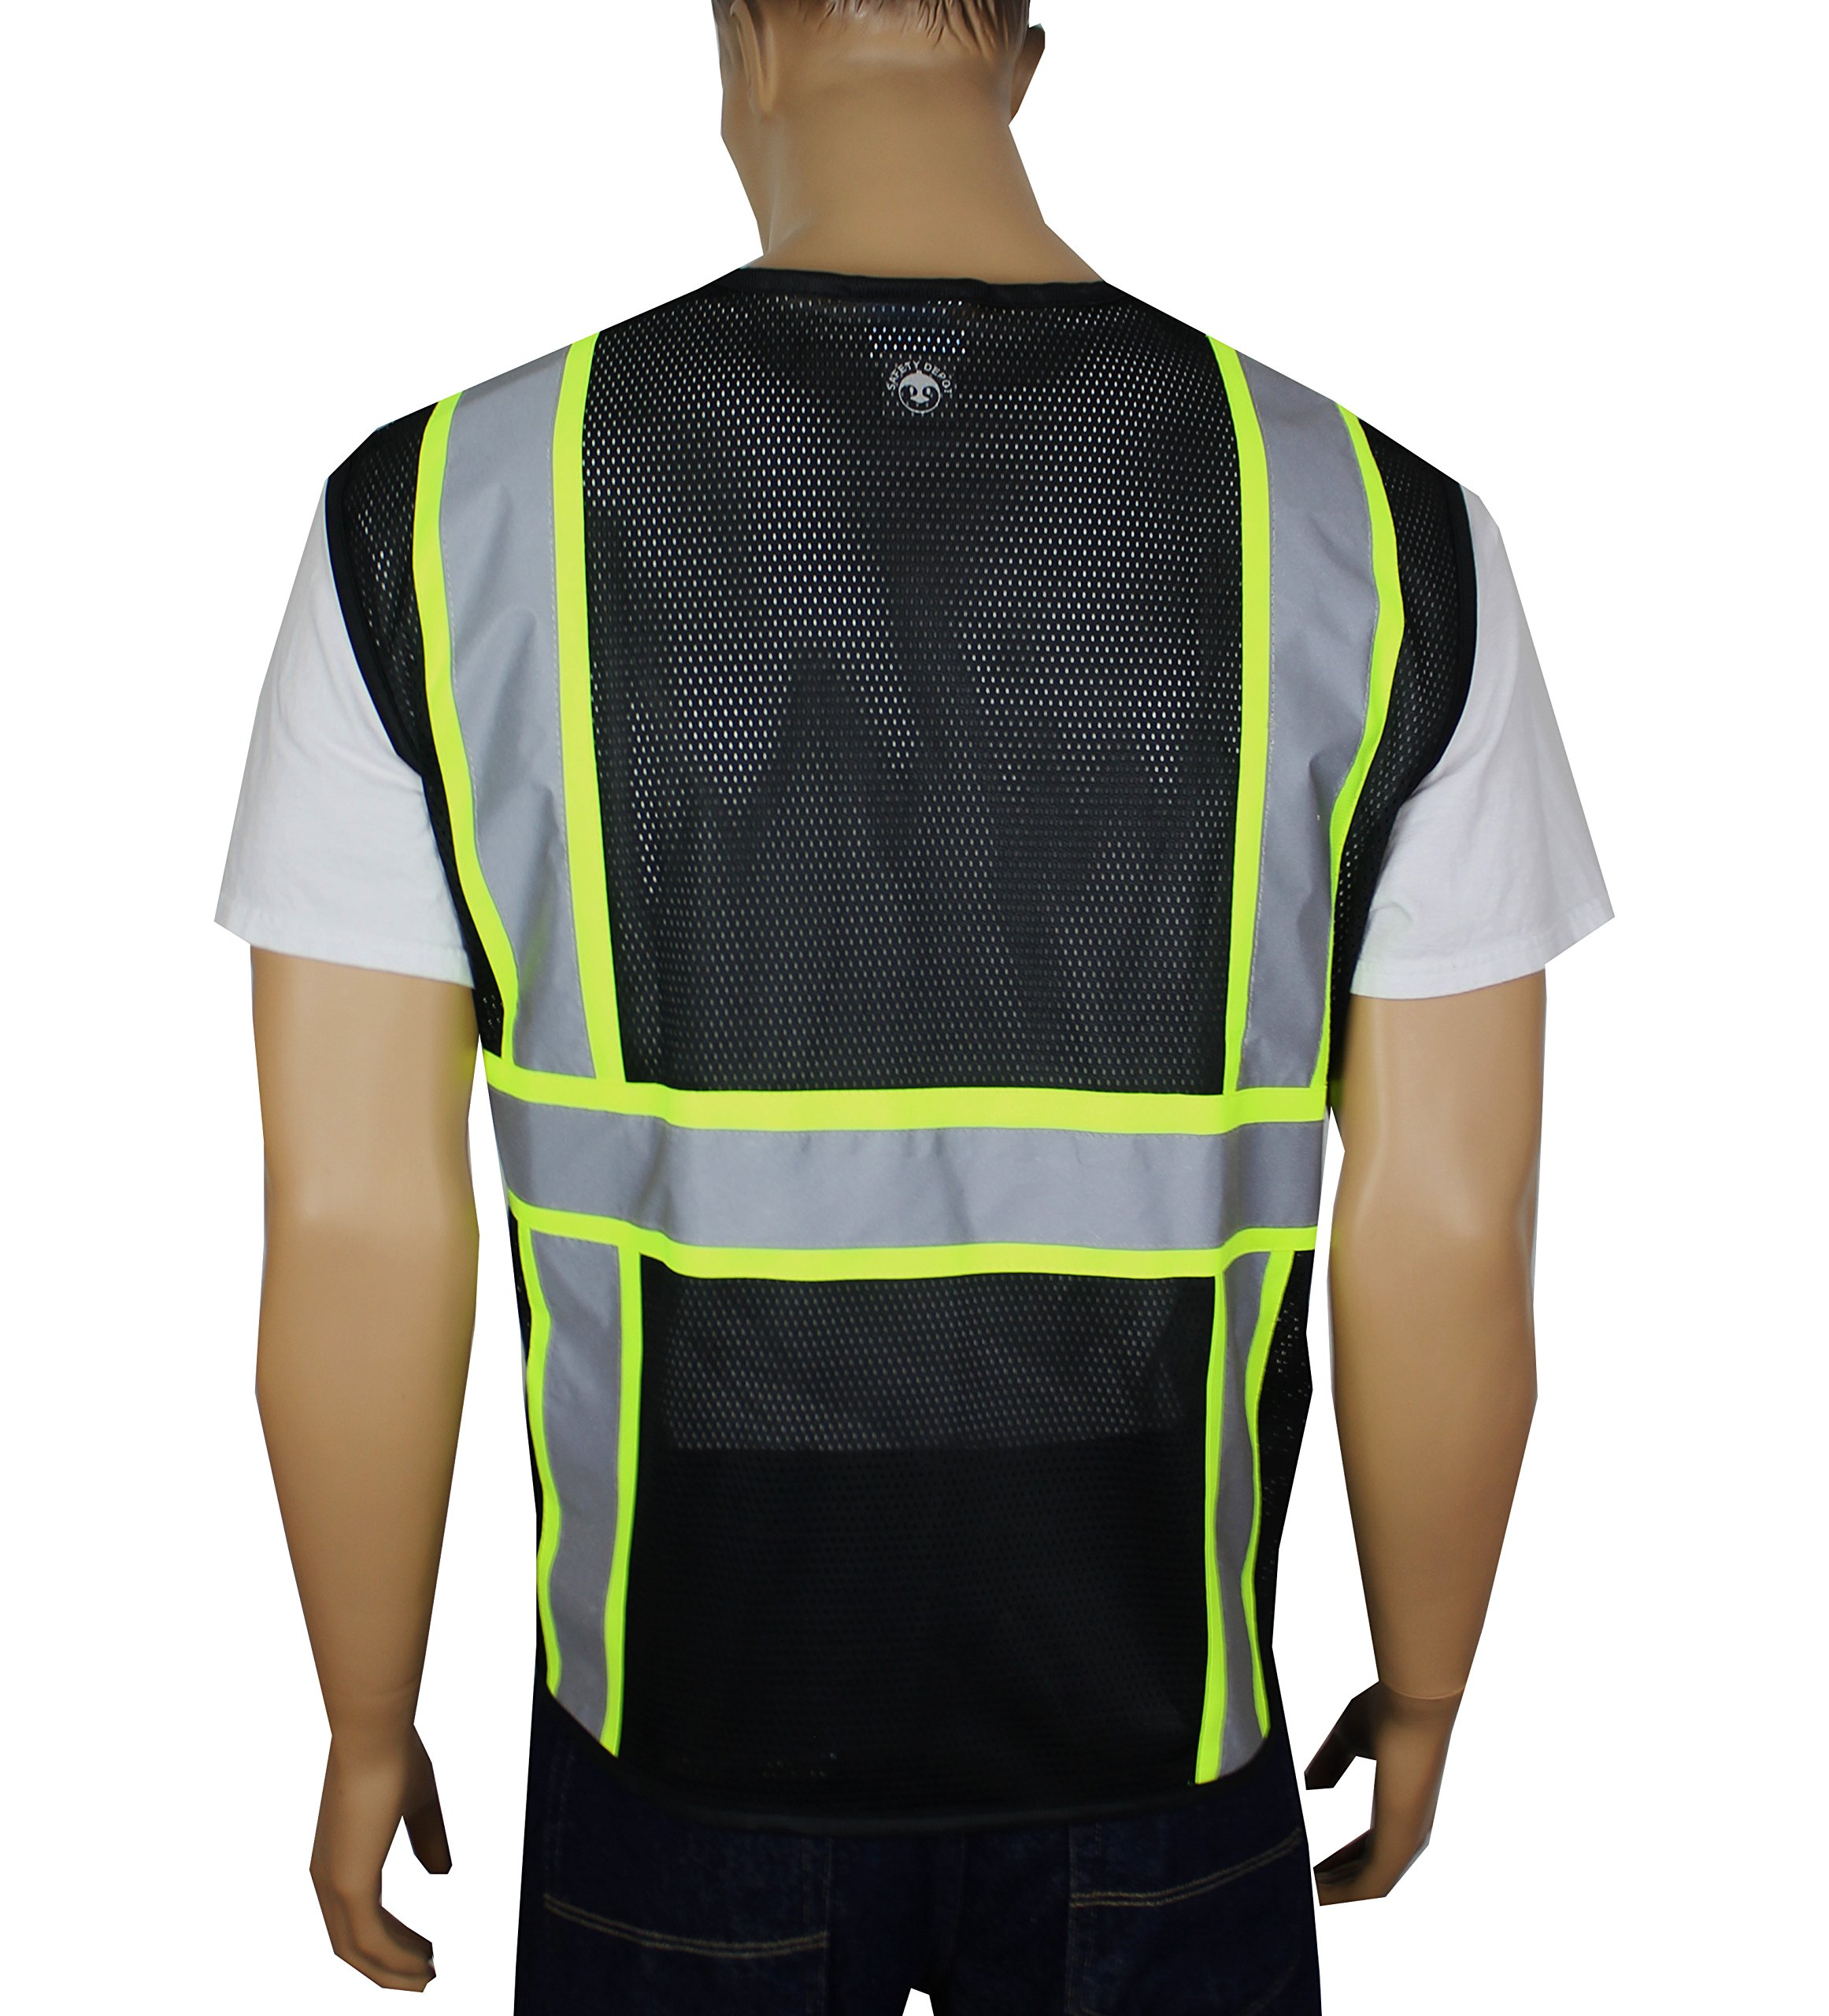 Safety Depot Breathable Safety Vest Multiple Colors Available, 4 Lower Pockets, 2 Chest Pockets with Pen Divider & High Visibility Reflective Tape MP40 (Mesh Black, Extra Large) by Safety Depot (Image #2)